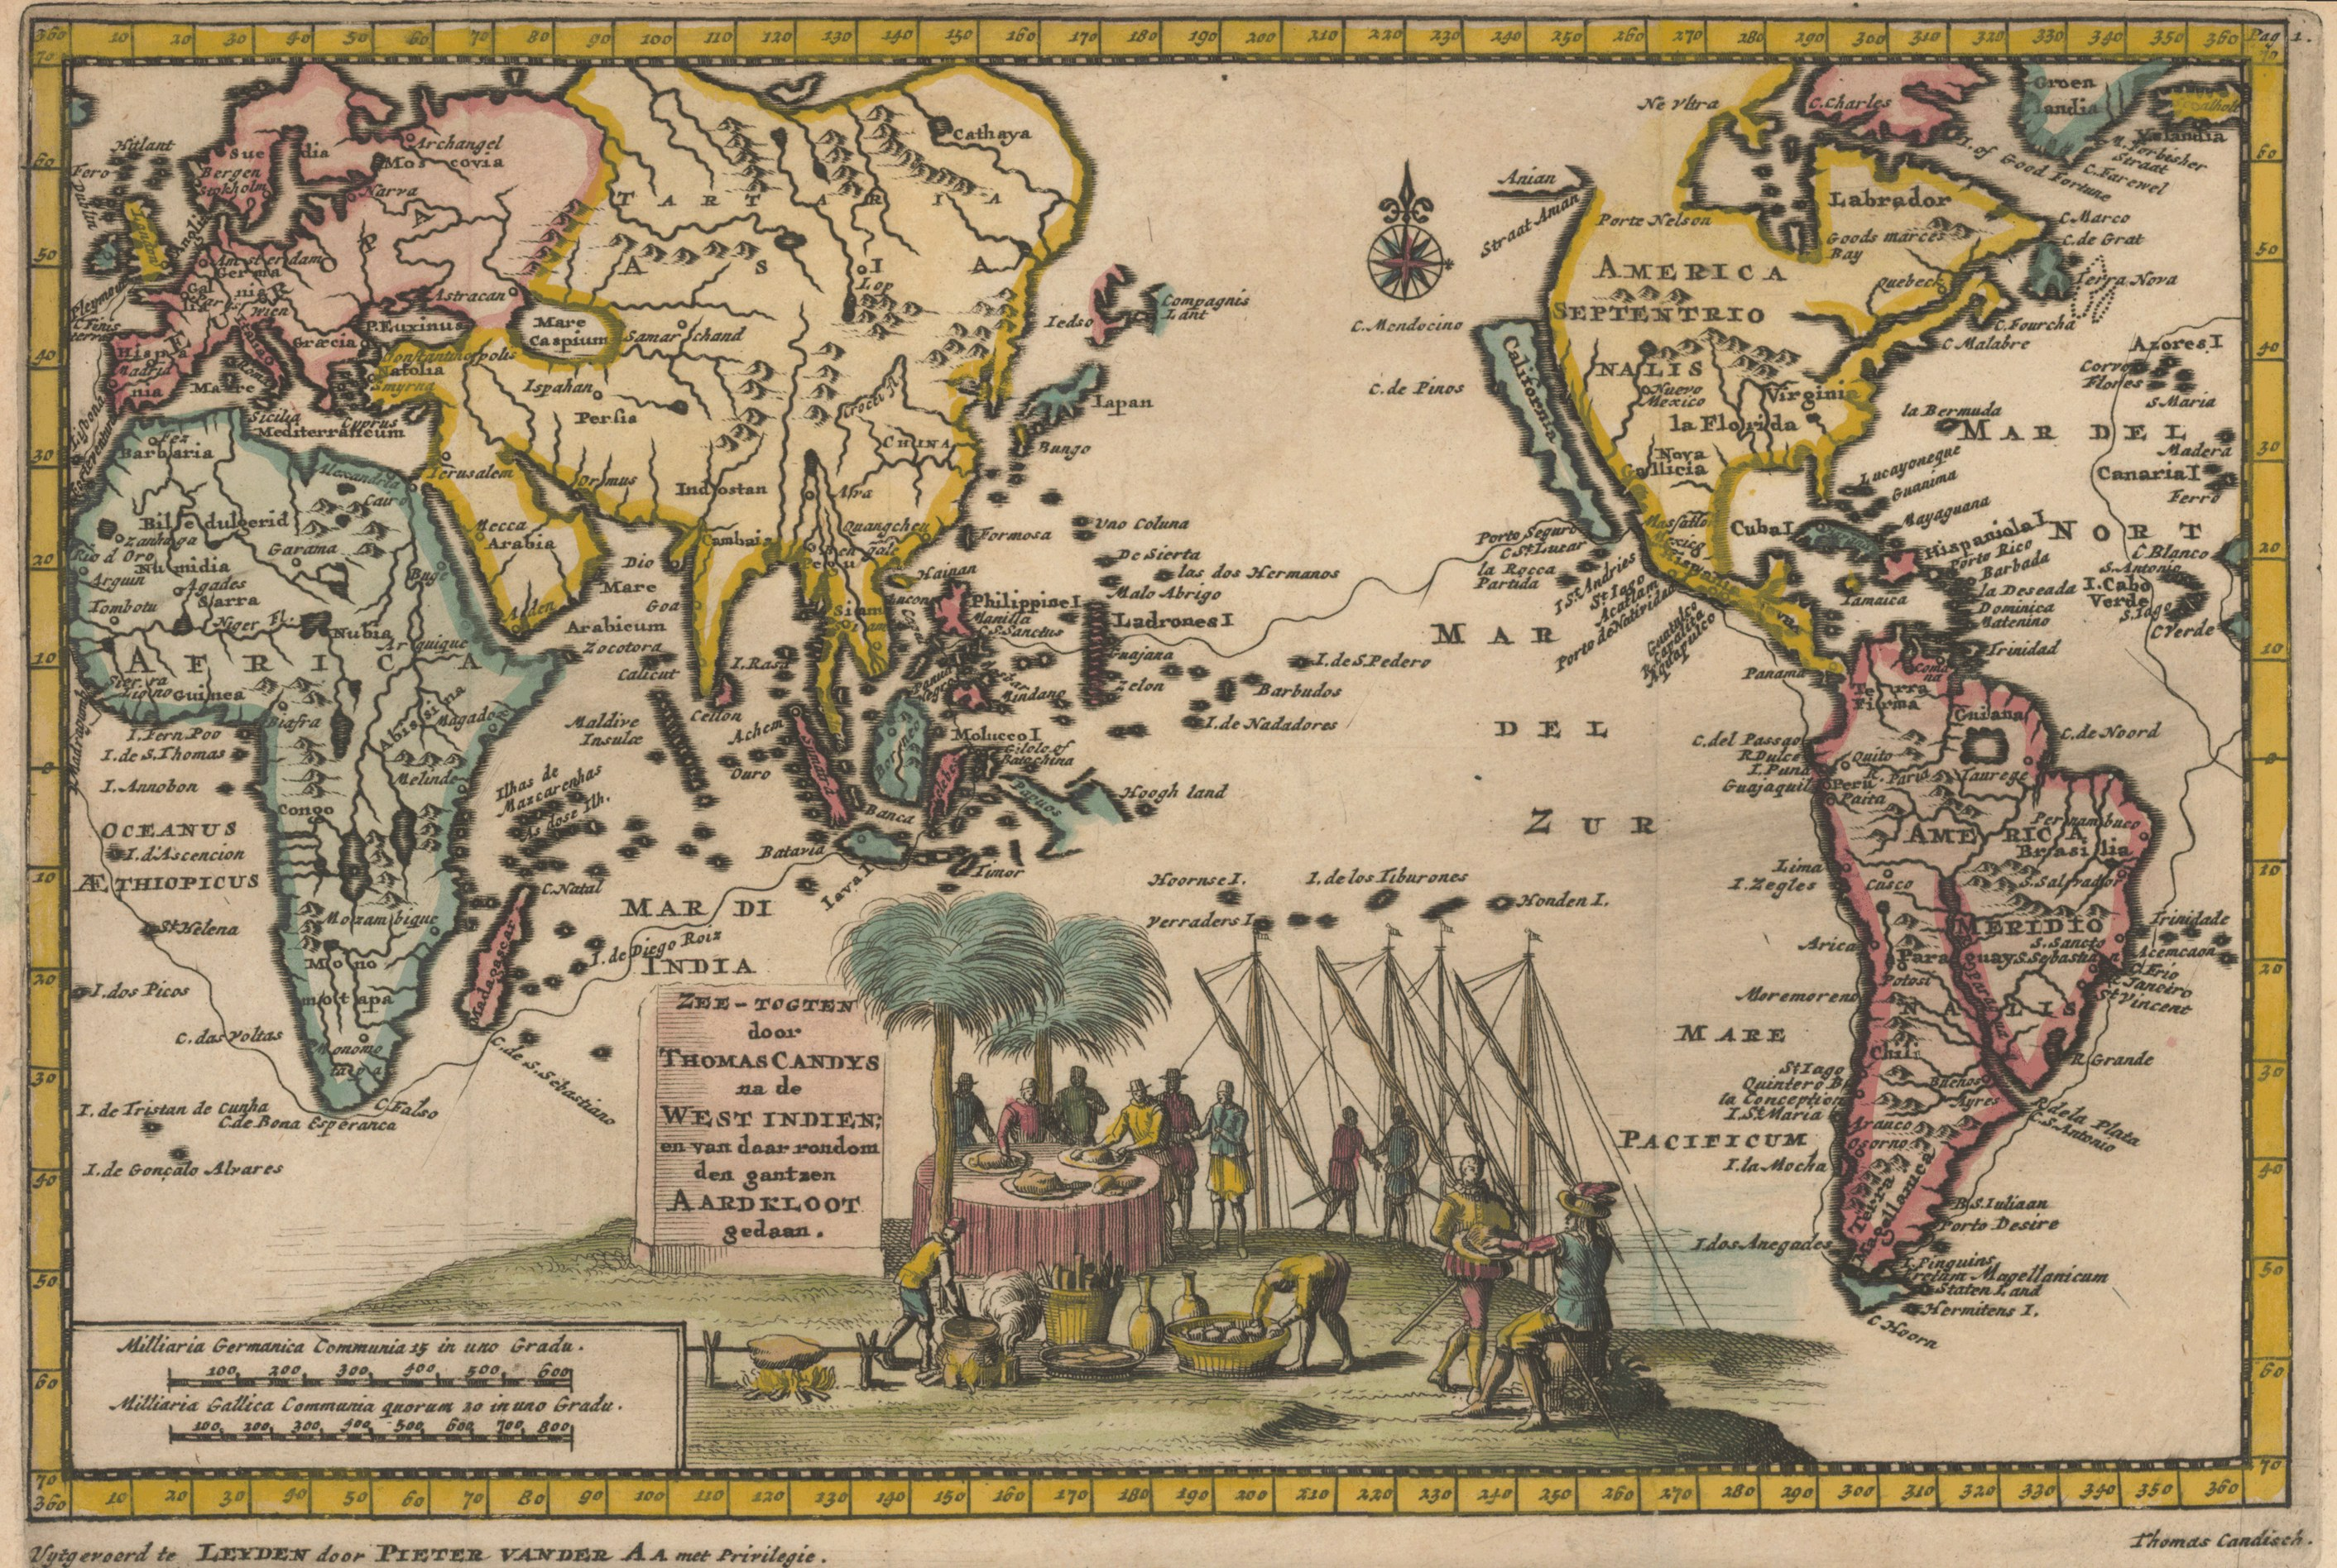 Exploration and colonization transpacificproject route gumiabroncs Image collections